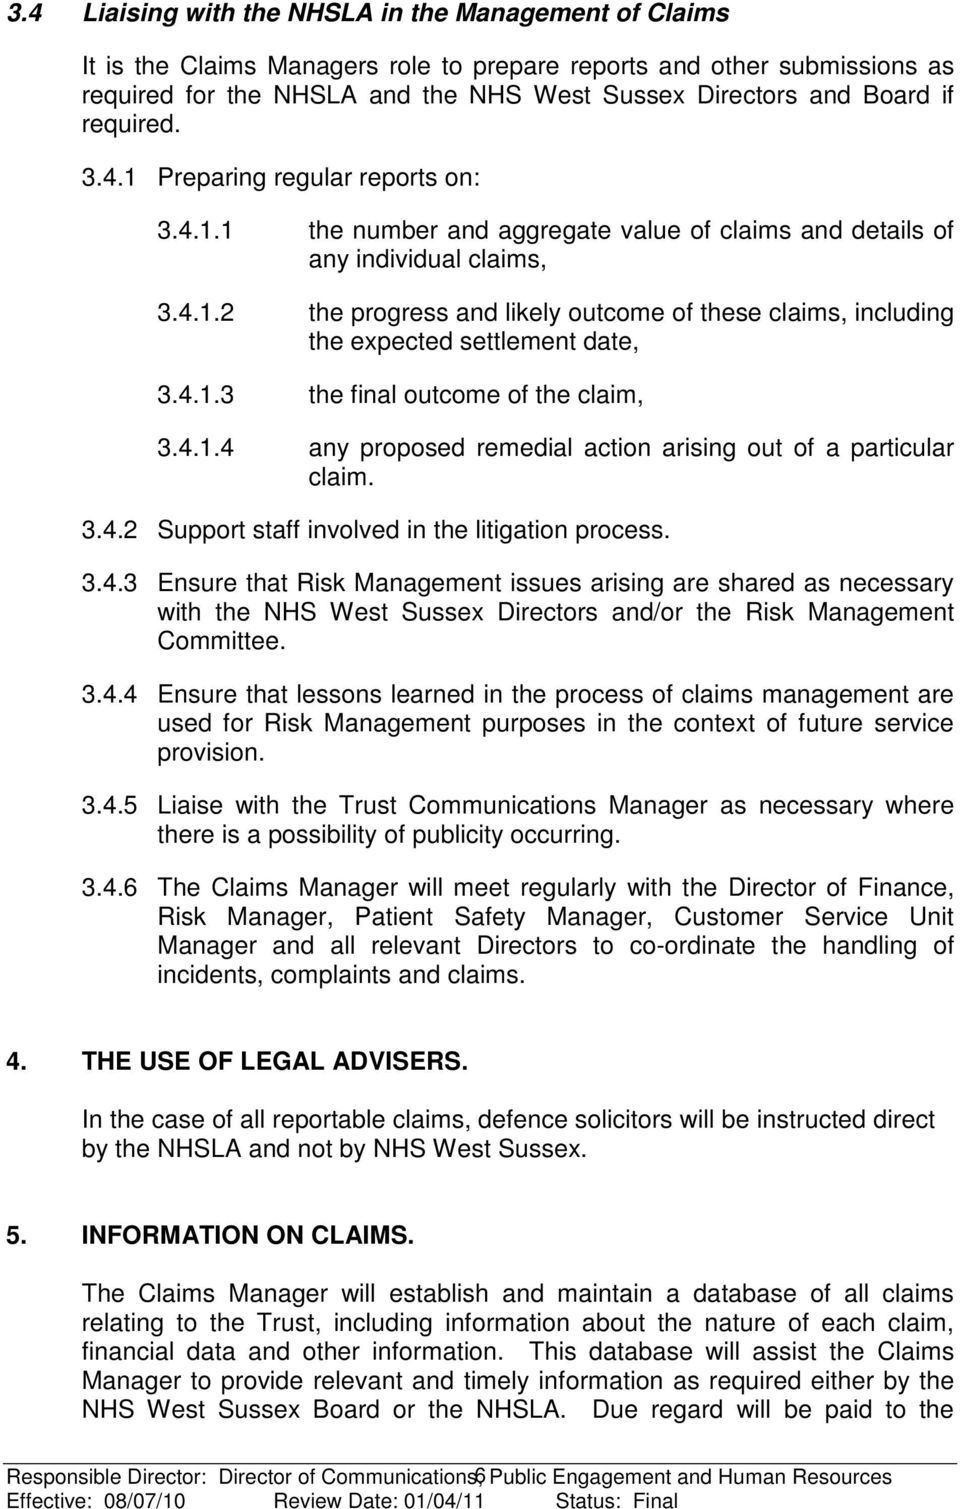 4.1.3 the final outcome of the claim, 3.4.1.4 any proposed remedial action arising out of a particular claim. 3.4.2 Support staff involved in the litigation process. 3.4.3 Ensure that Risk Management issues arising are shared as necessary with the NHS West Sussex Directors and/or the Risk Management Committee.